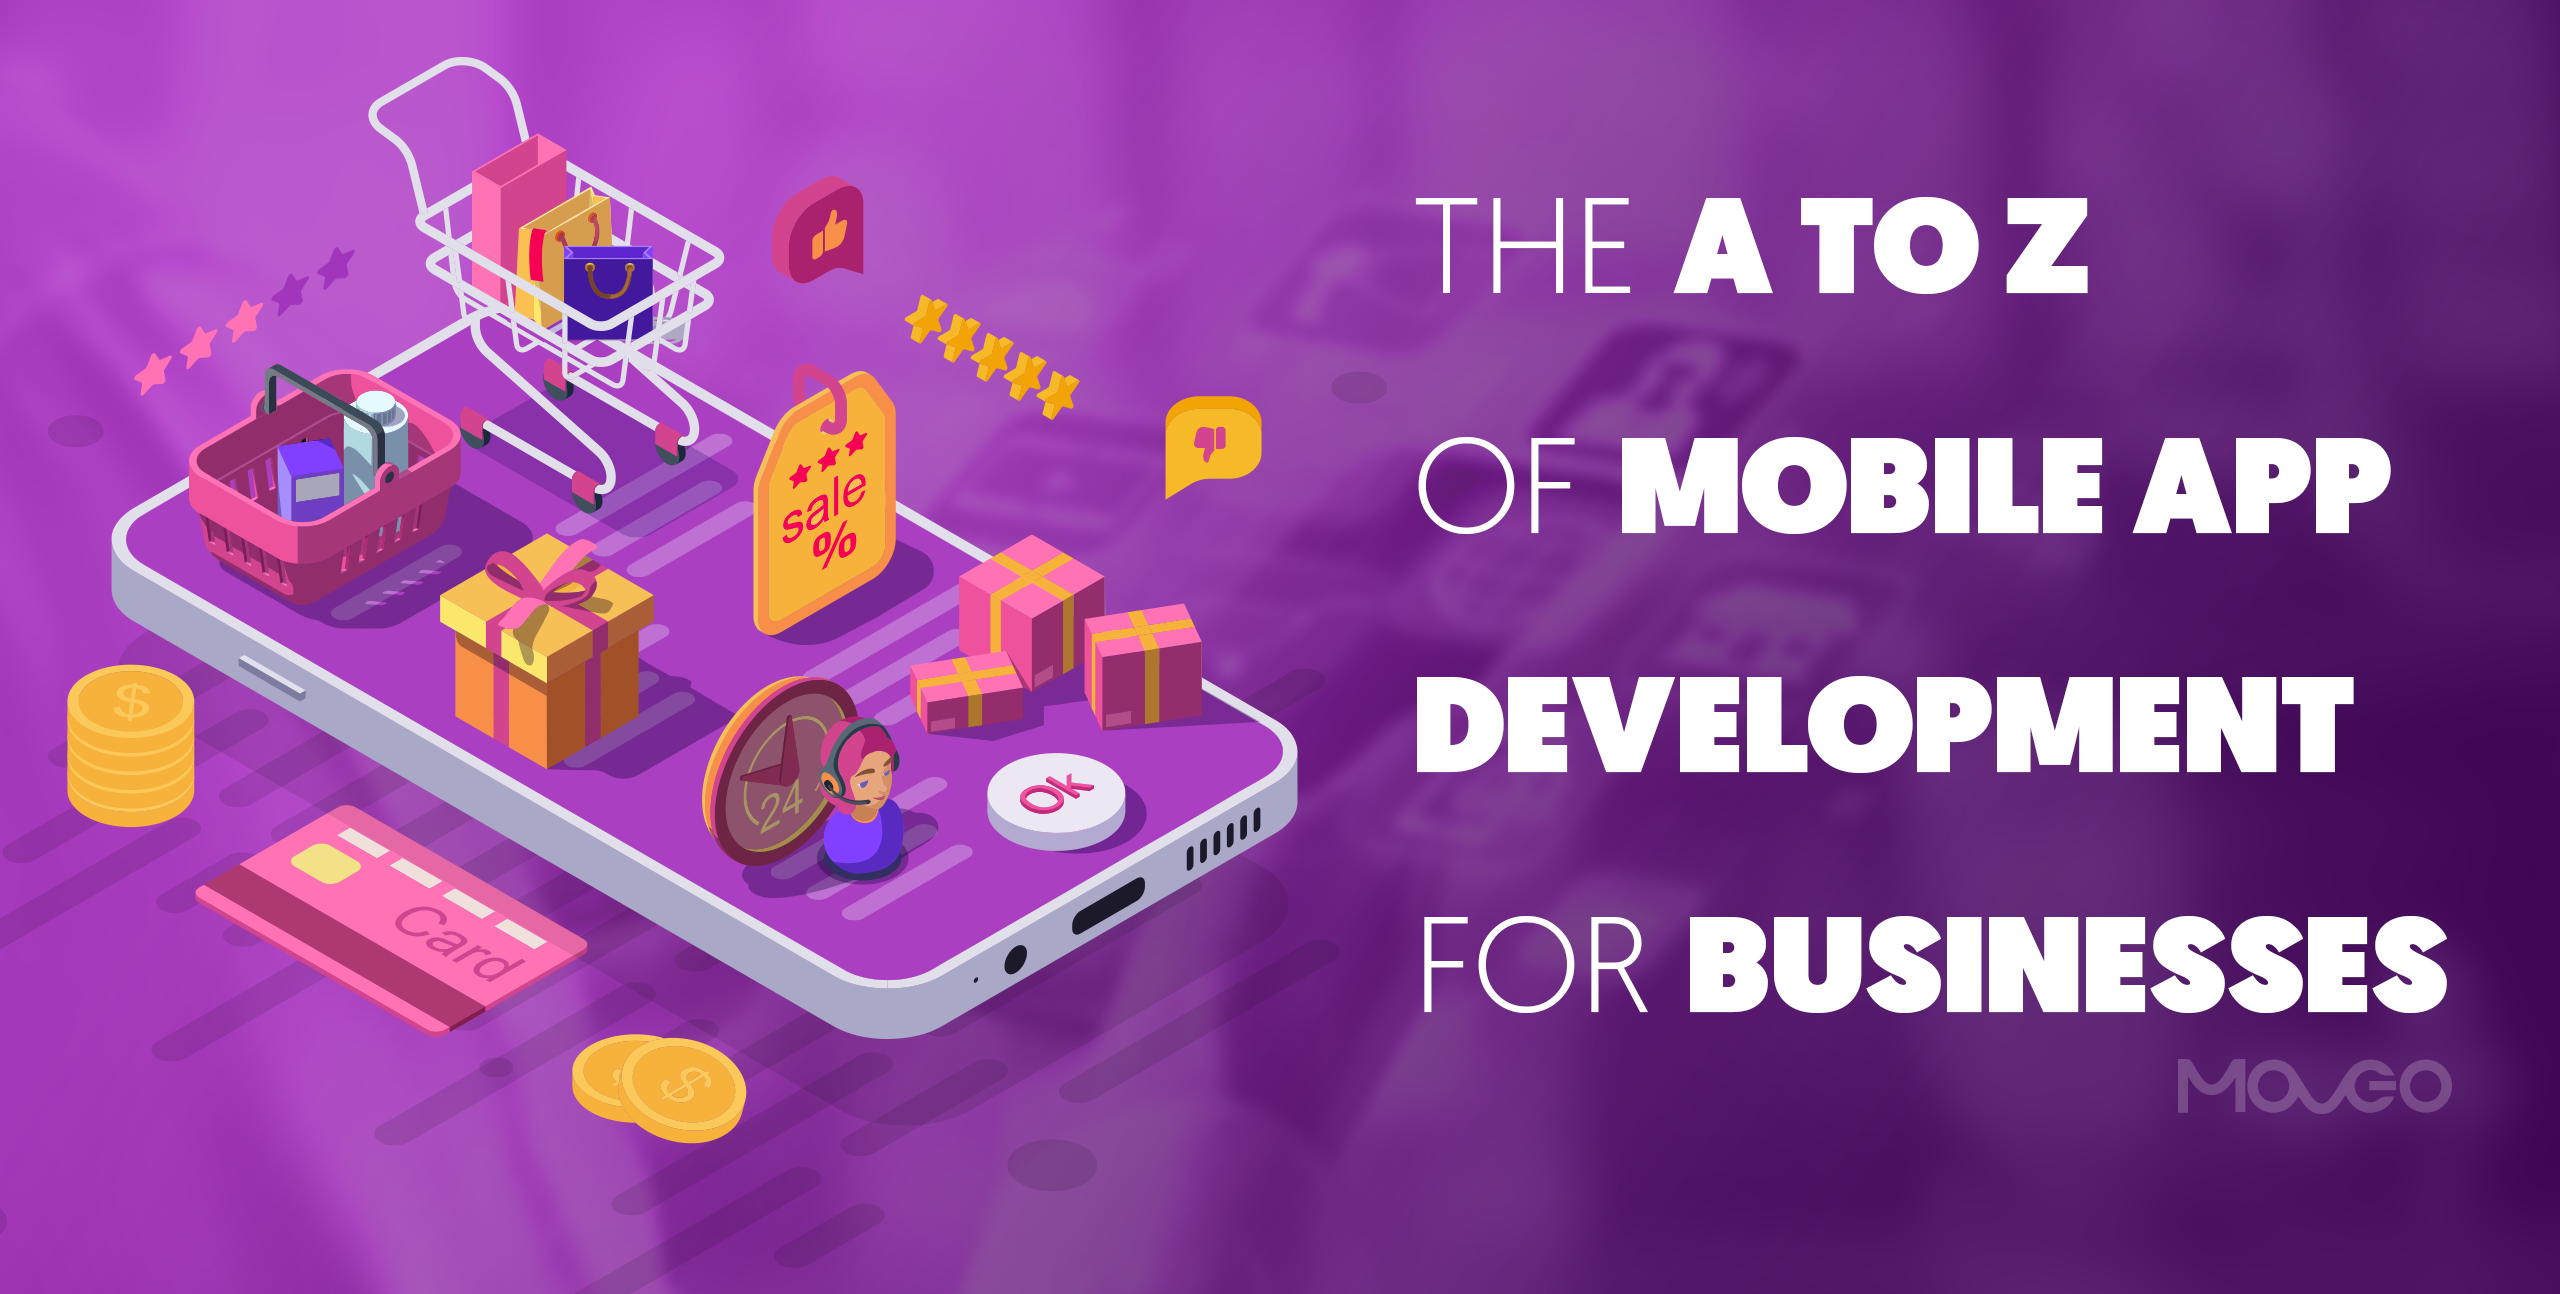 The a to z of mobile app development for businesses